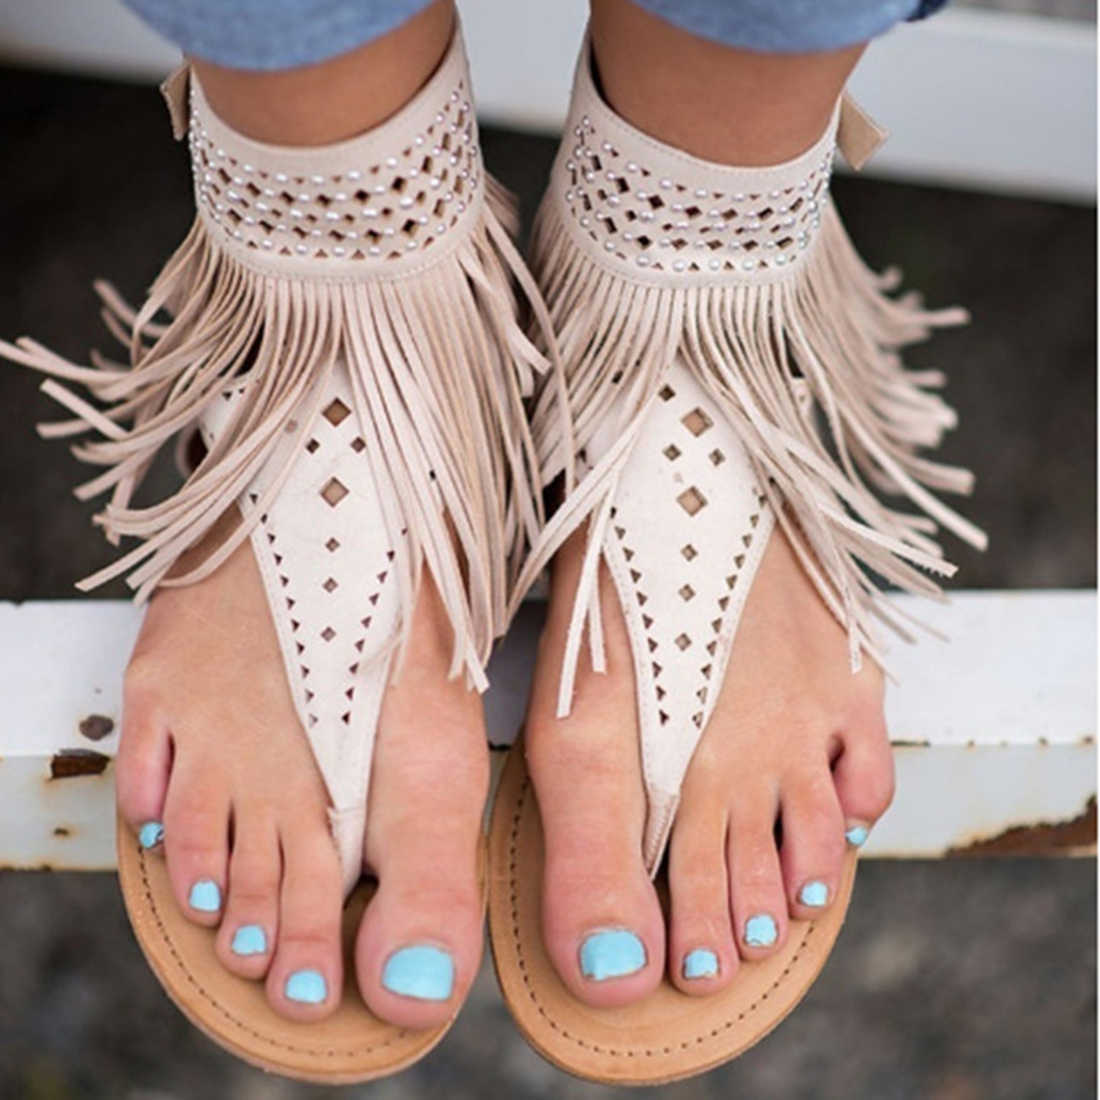 e3f76d9d195763 Women Sandals Fashion Tassel Summer Shoes Women 2018 New Flat Sandals  Female Flip Flops Casual Sandale